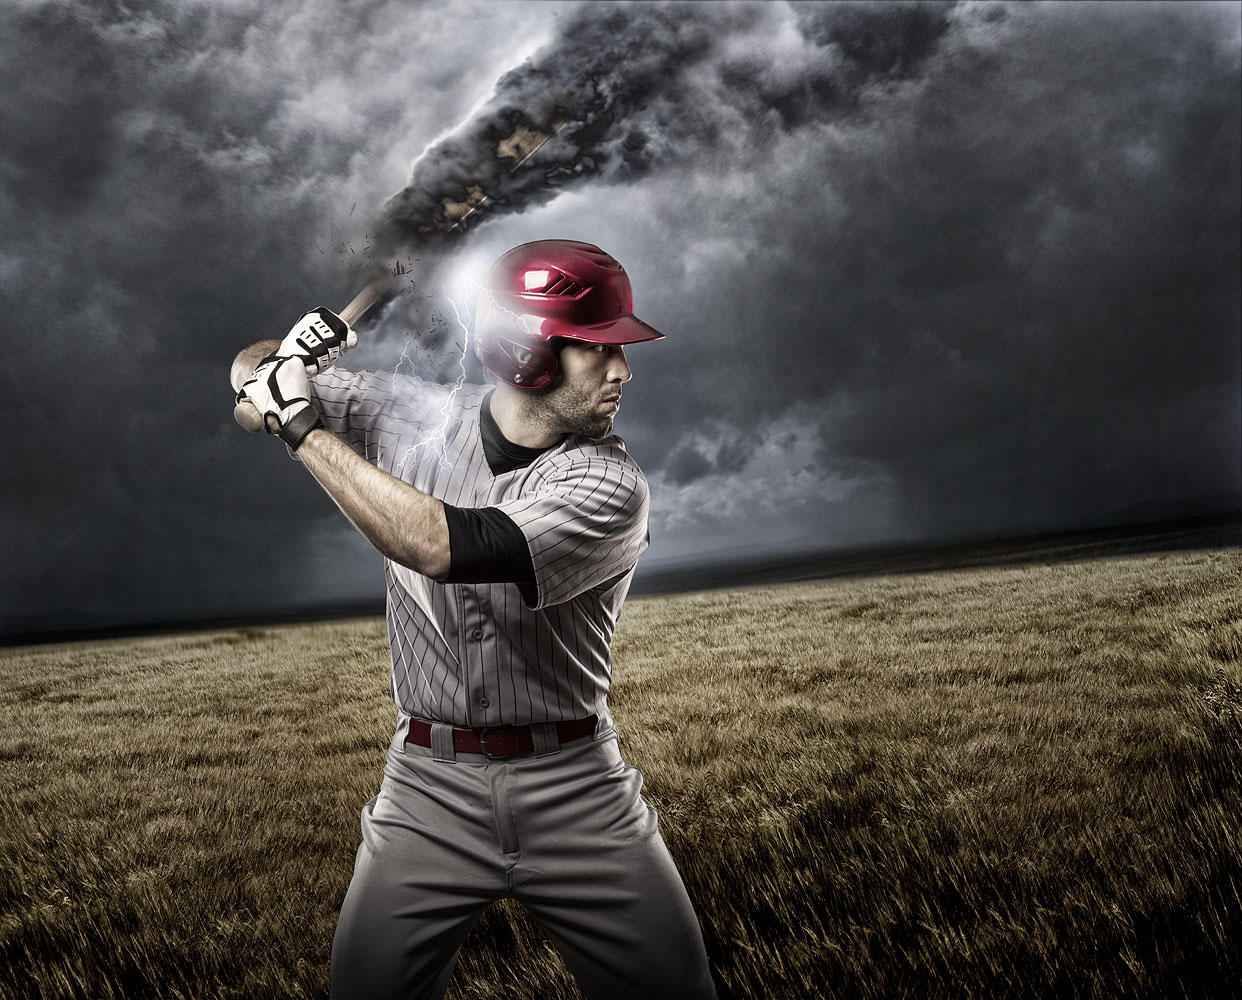 15 Baseball Photoshop Effects Images